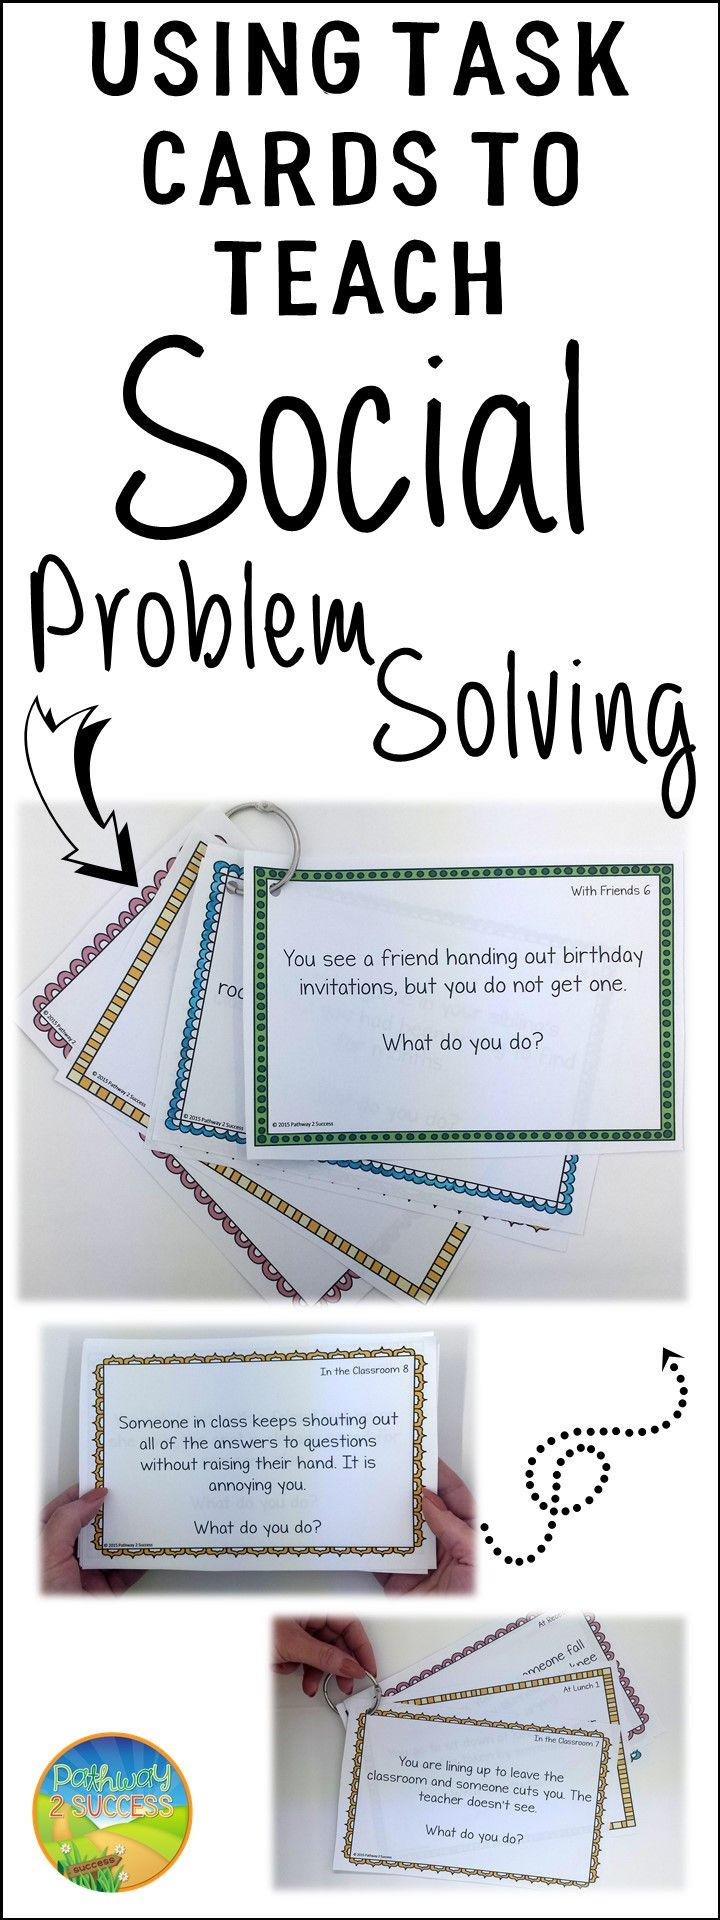 Strategies and tips for using task cards to teach social problem solving skills #pathway2success #specialeducation #socialskills